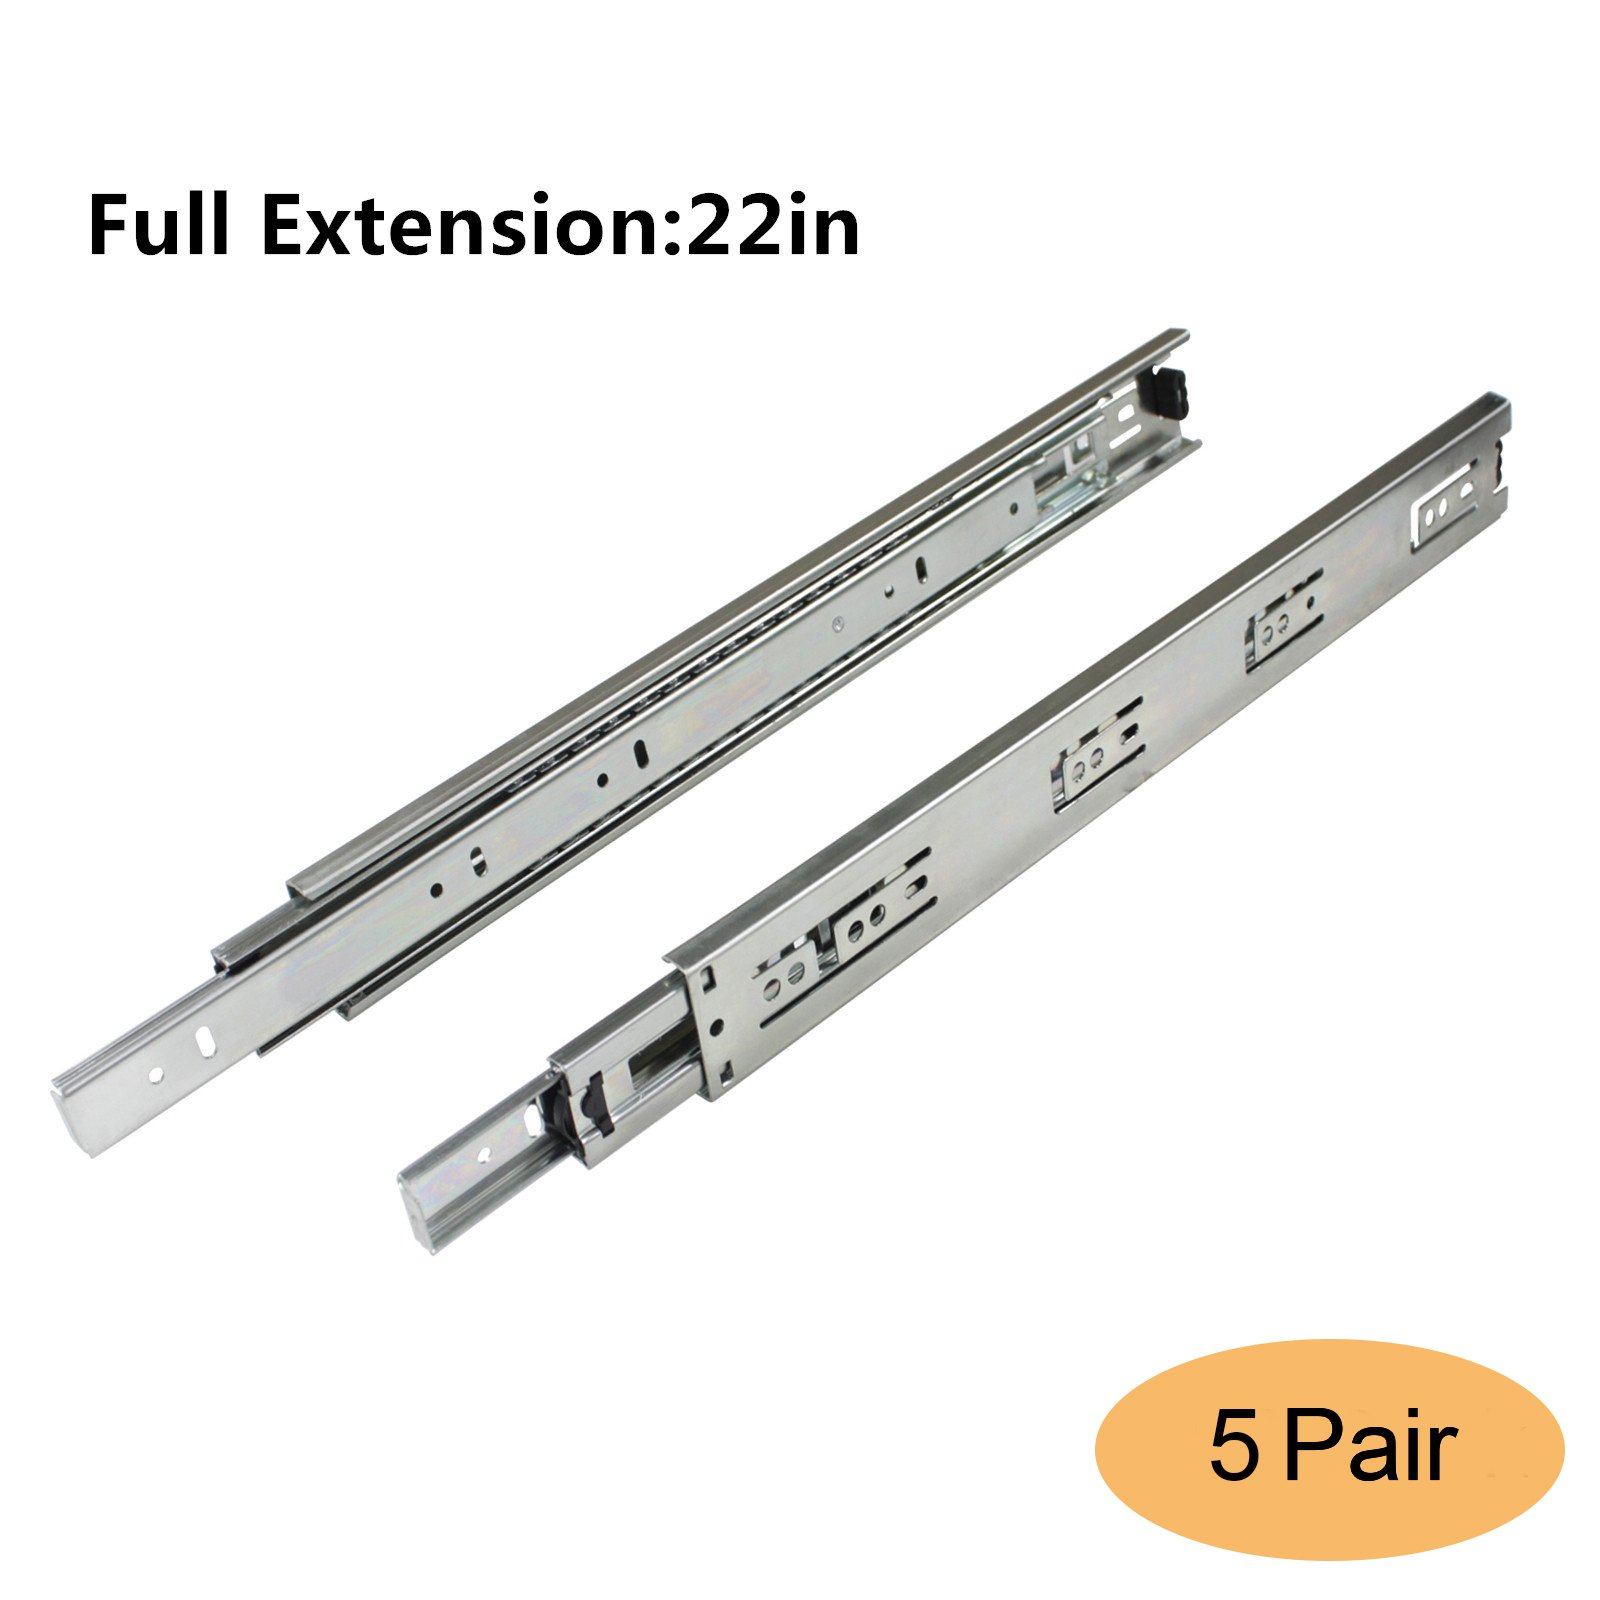 Gobrico Drawer Slides Heavy Duty Full Extension 22in Ball Bearing 3Folds Side Mount Furniture Glides Runners Hardware 5Pair